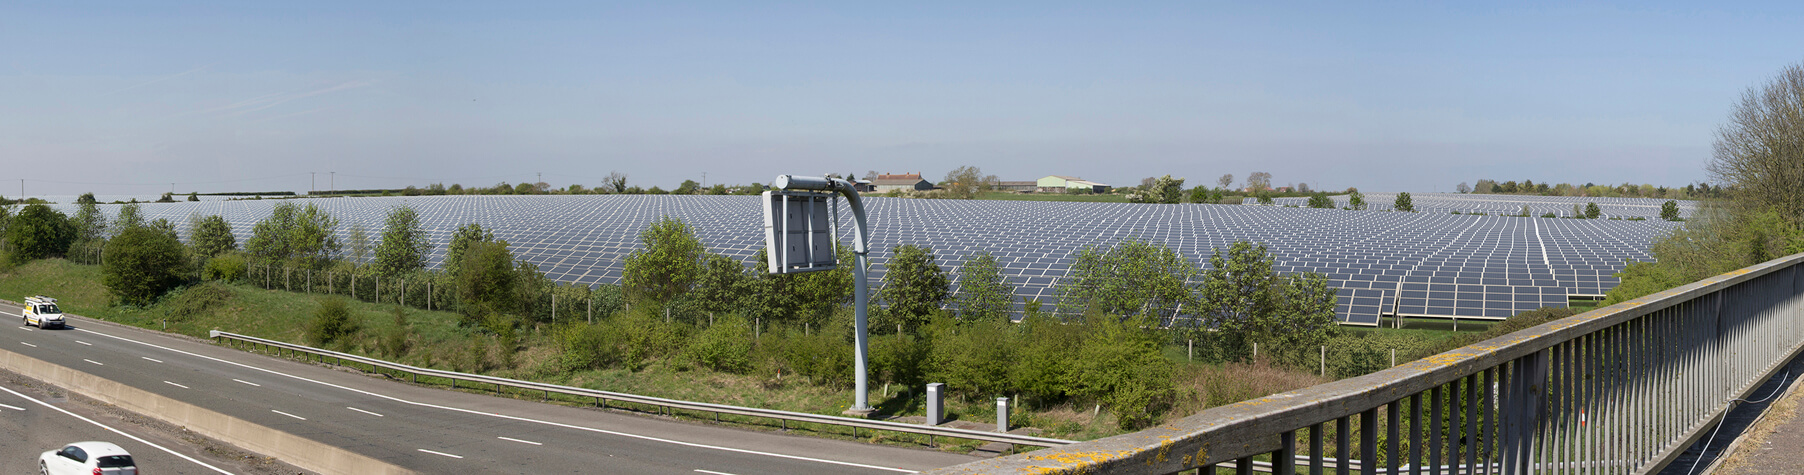 2_Solar Farm Sustainable Energy